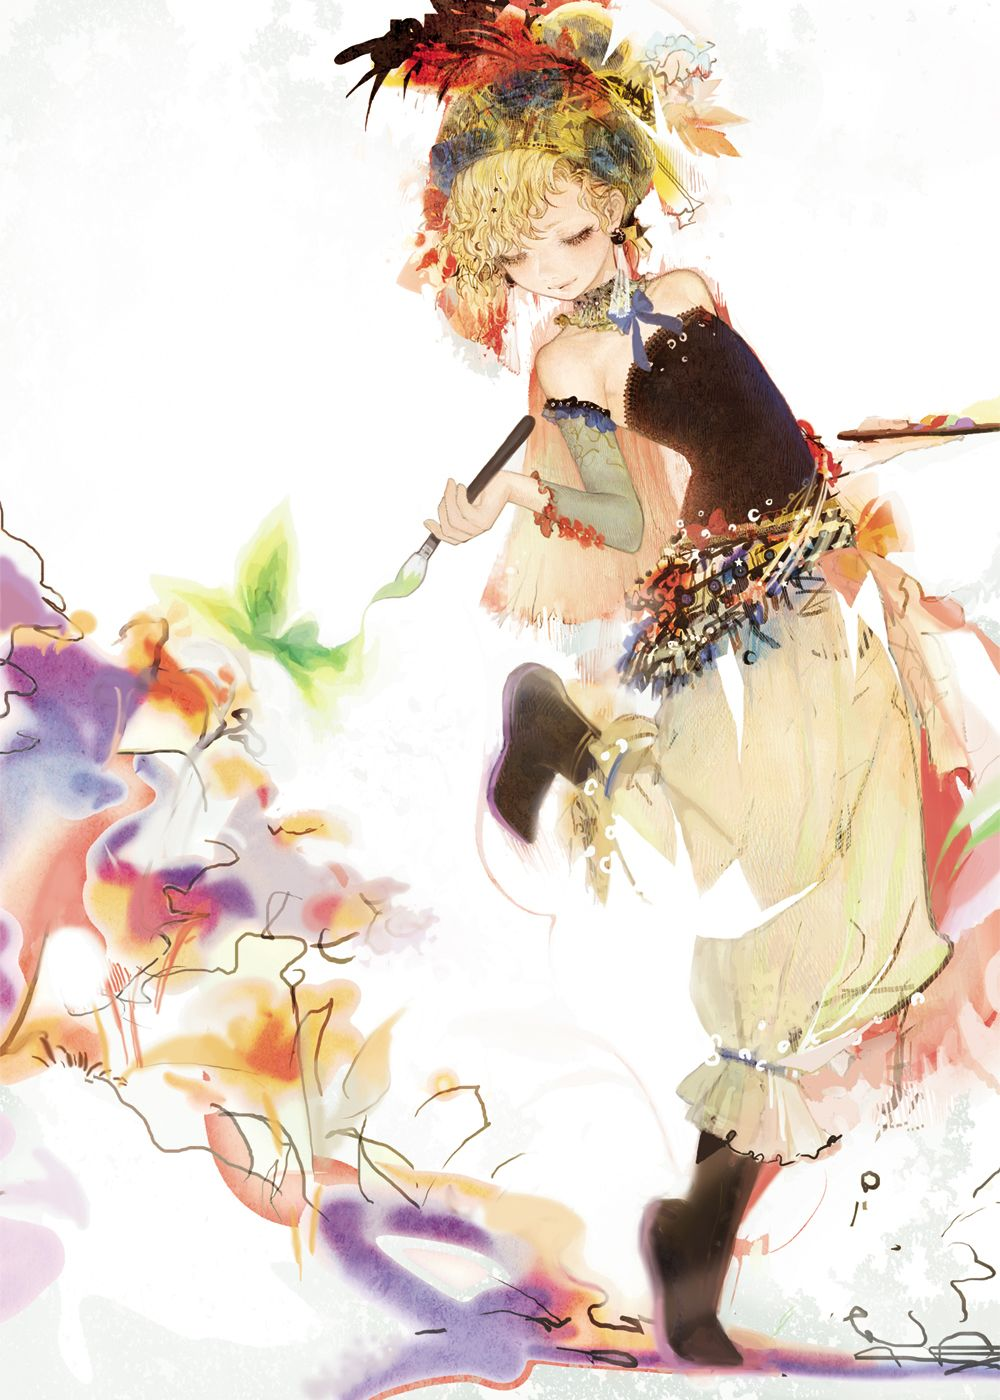 Relm Arrowny By またよし Final Fantasy Art Final Fantasy Artwork Final Fantasy Vi